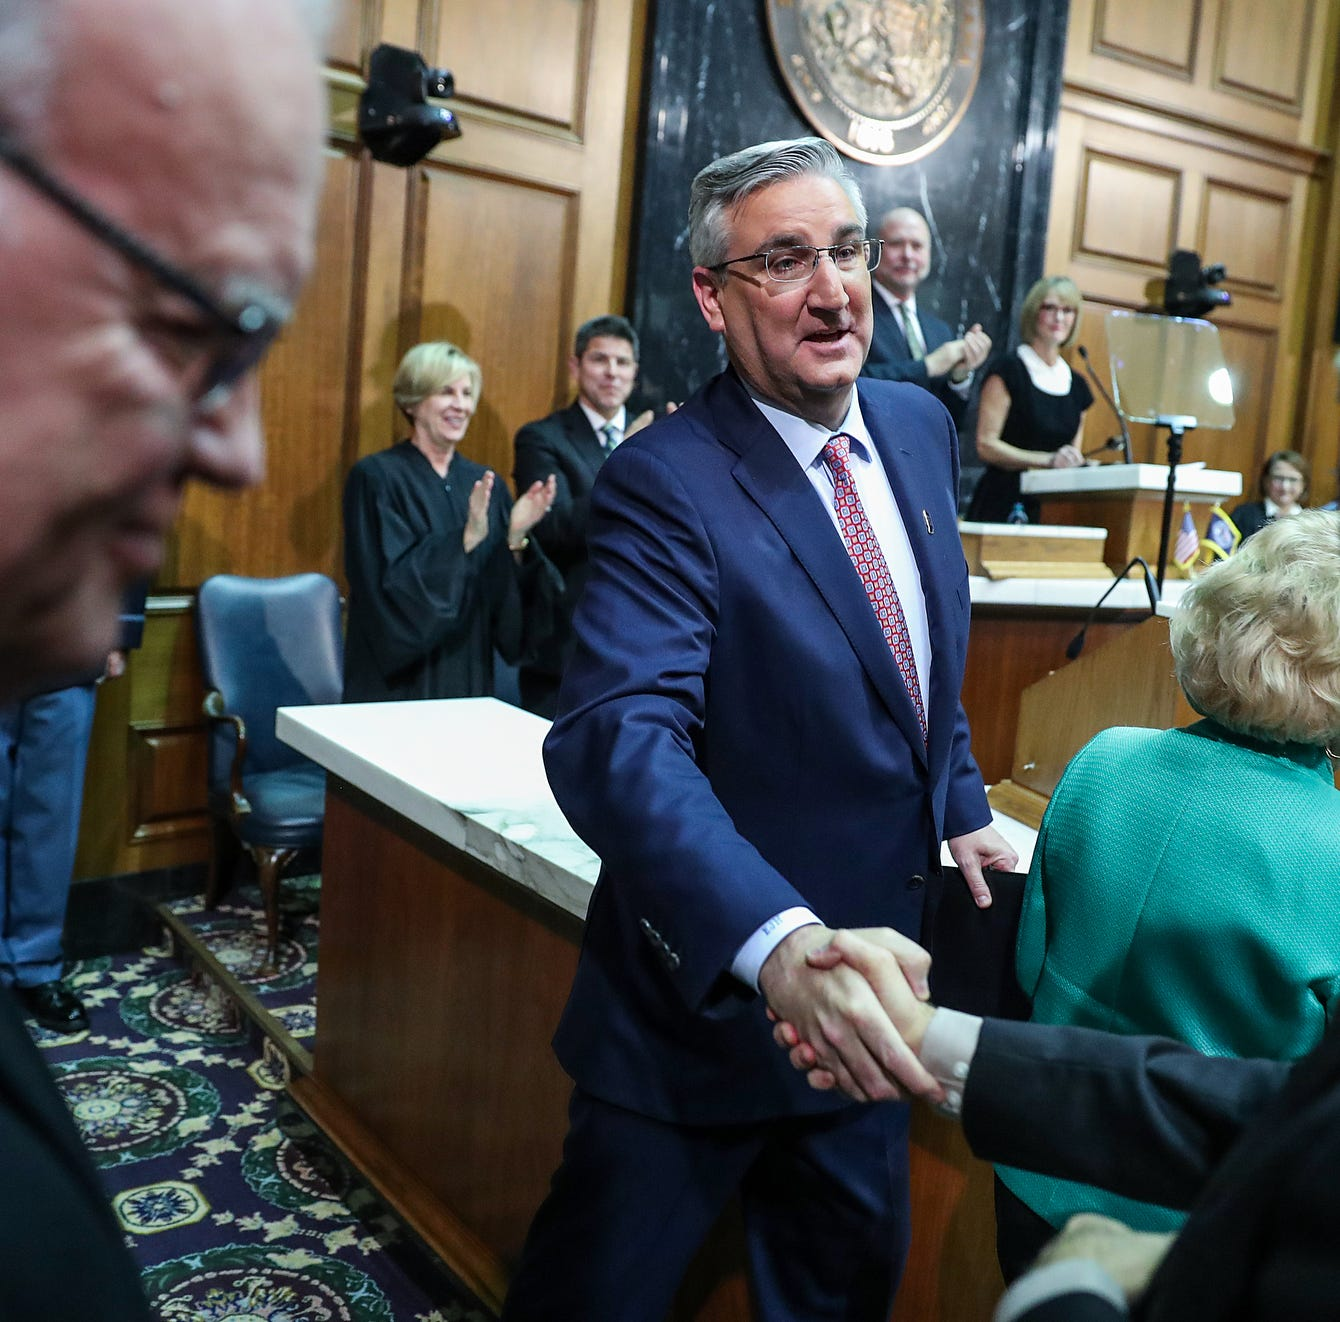 5 takeaways from Gov. Holcomb's State of the State address, 1 of which surprised us